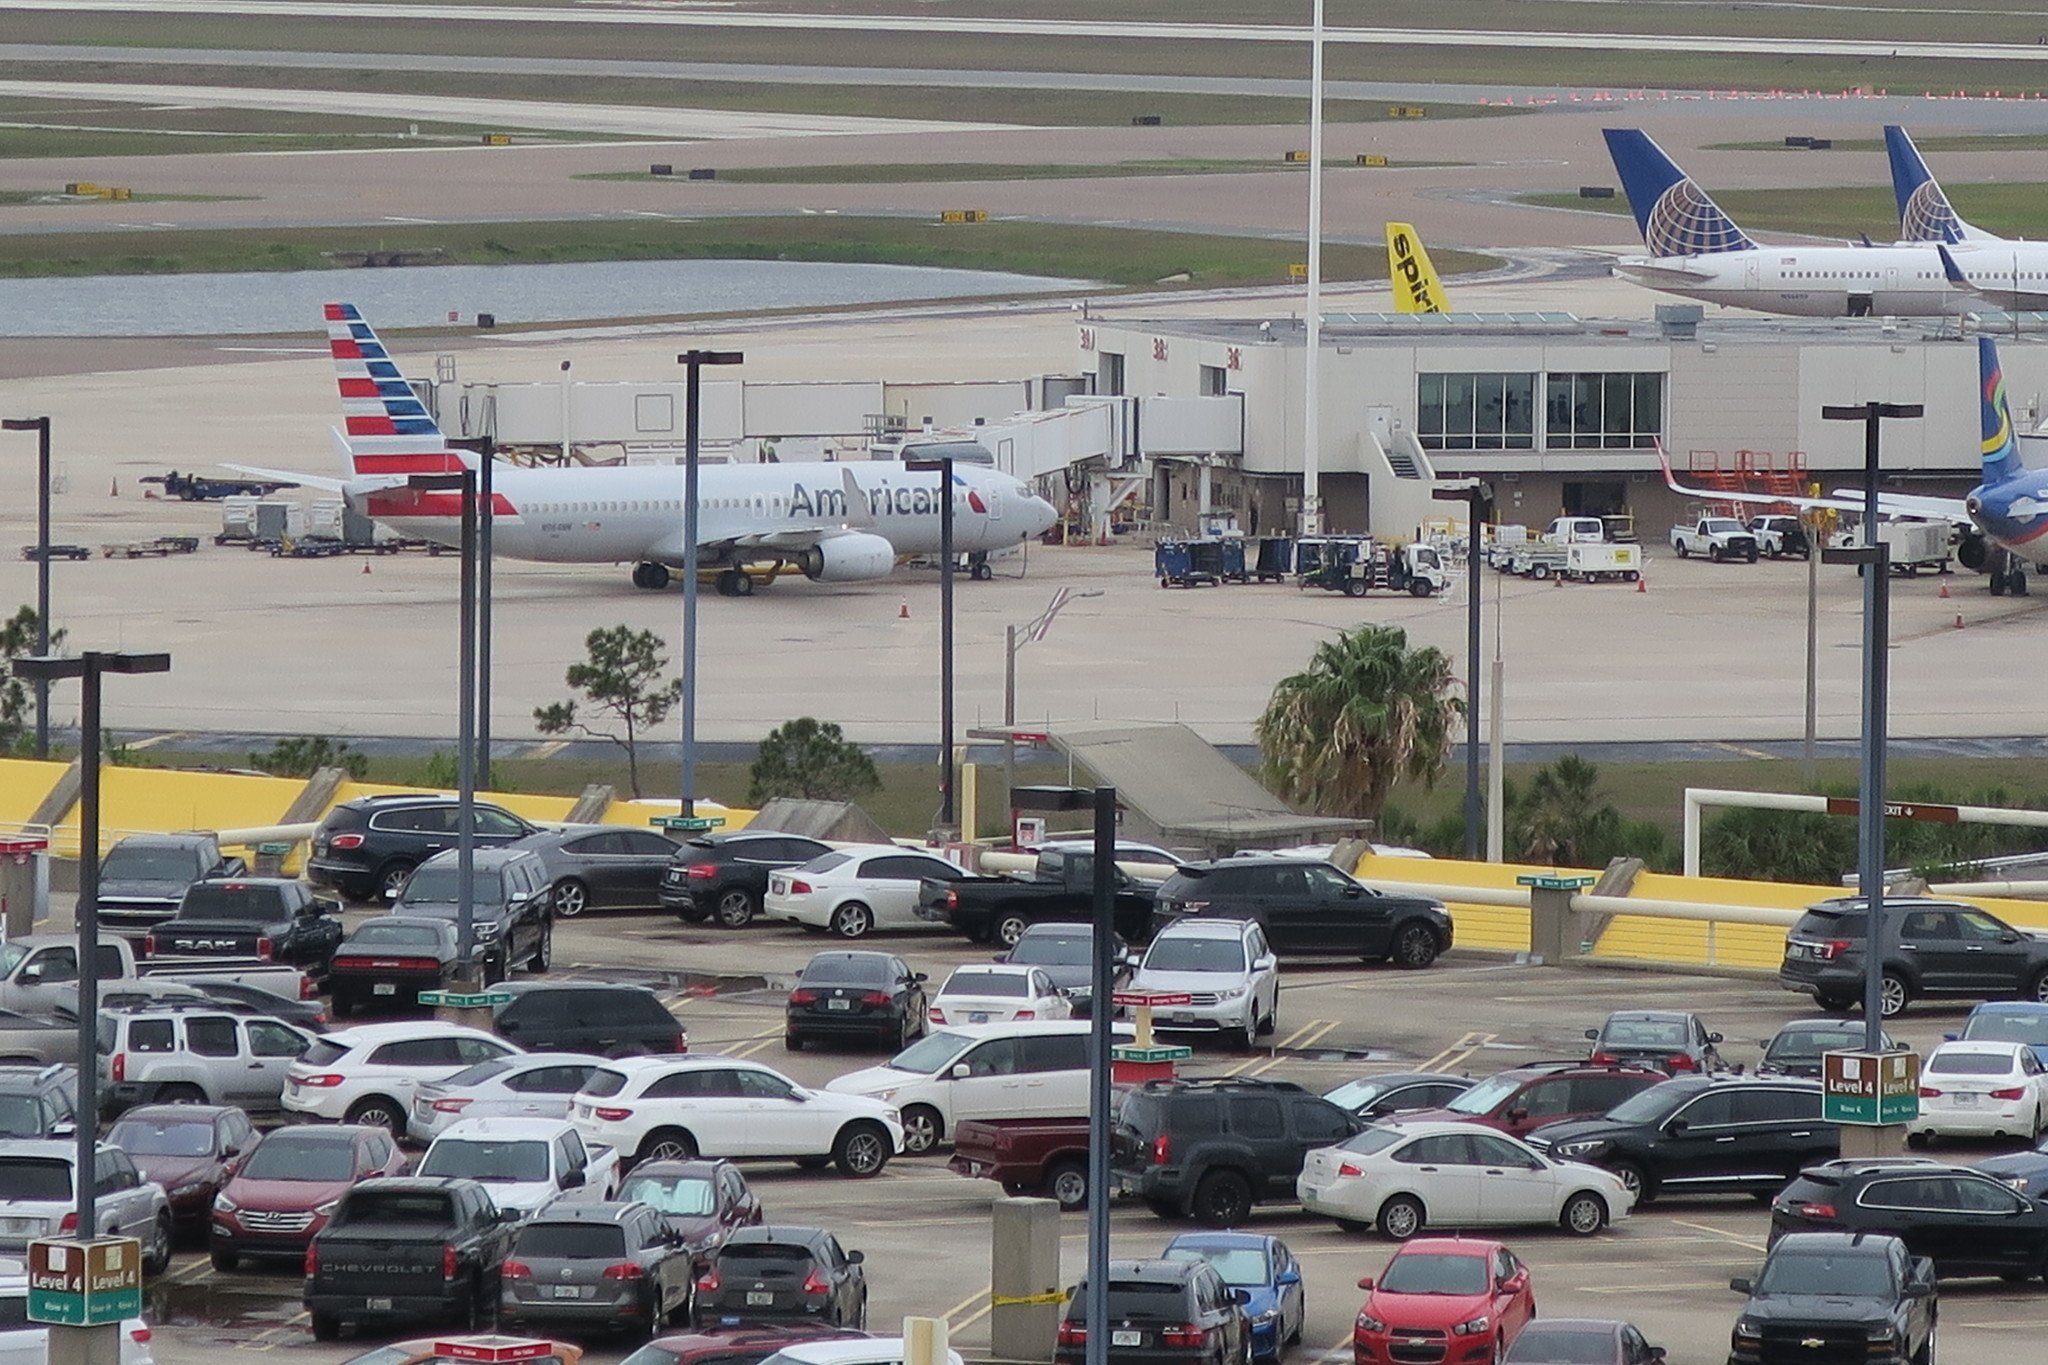 Orlando Airport Wants To Raise Cost Of Parking In Crowded